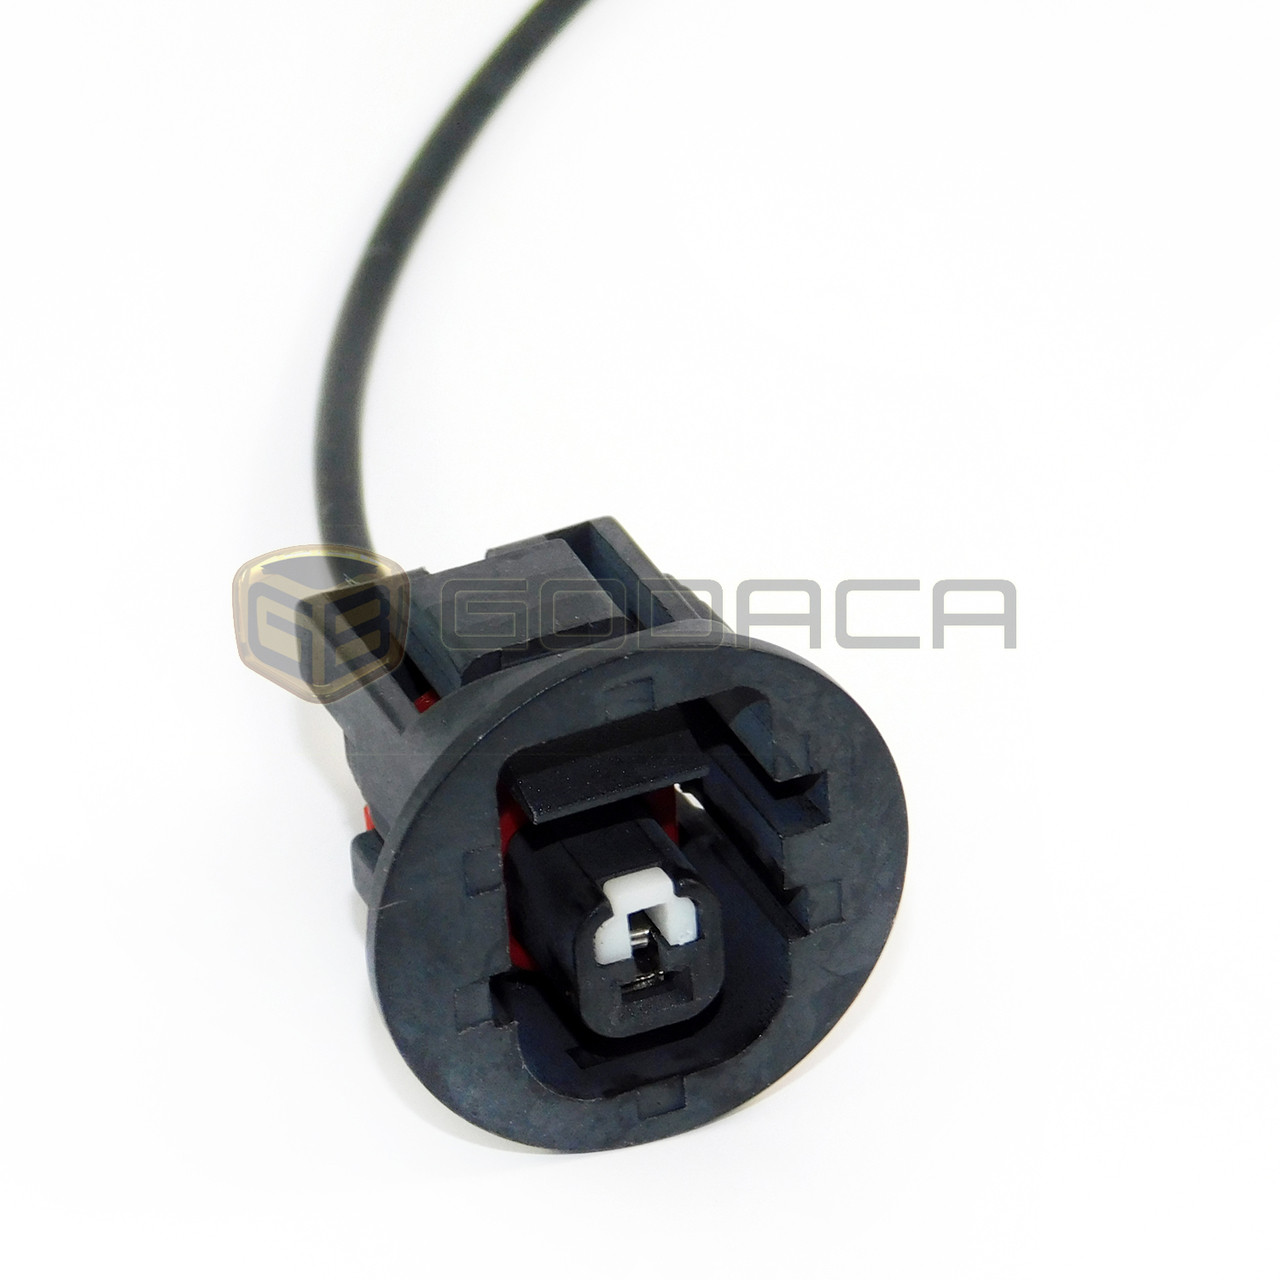 Toyota Wiring Harness Connector 11428 Diagram Database Car Loom Suppliers 1 X Oil Pressure Sensor Way 2jz Honda K20z3 Wire Adapter 5 Electrical Connectors